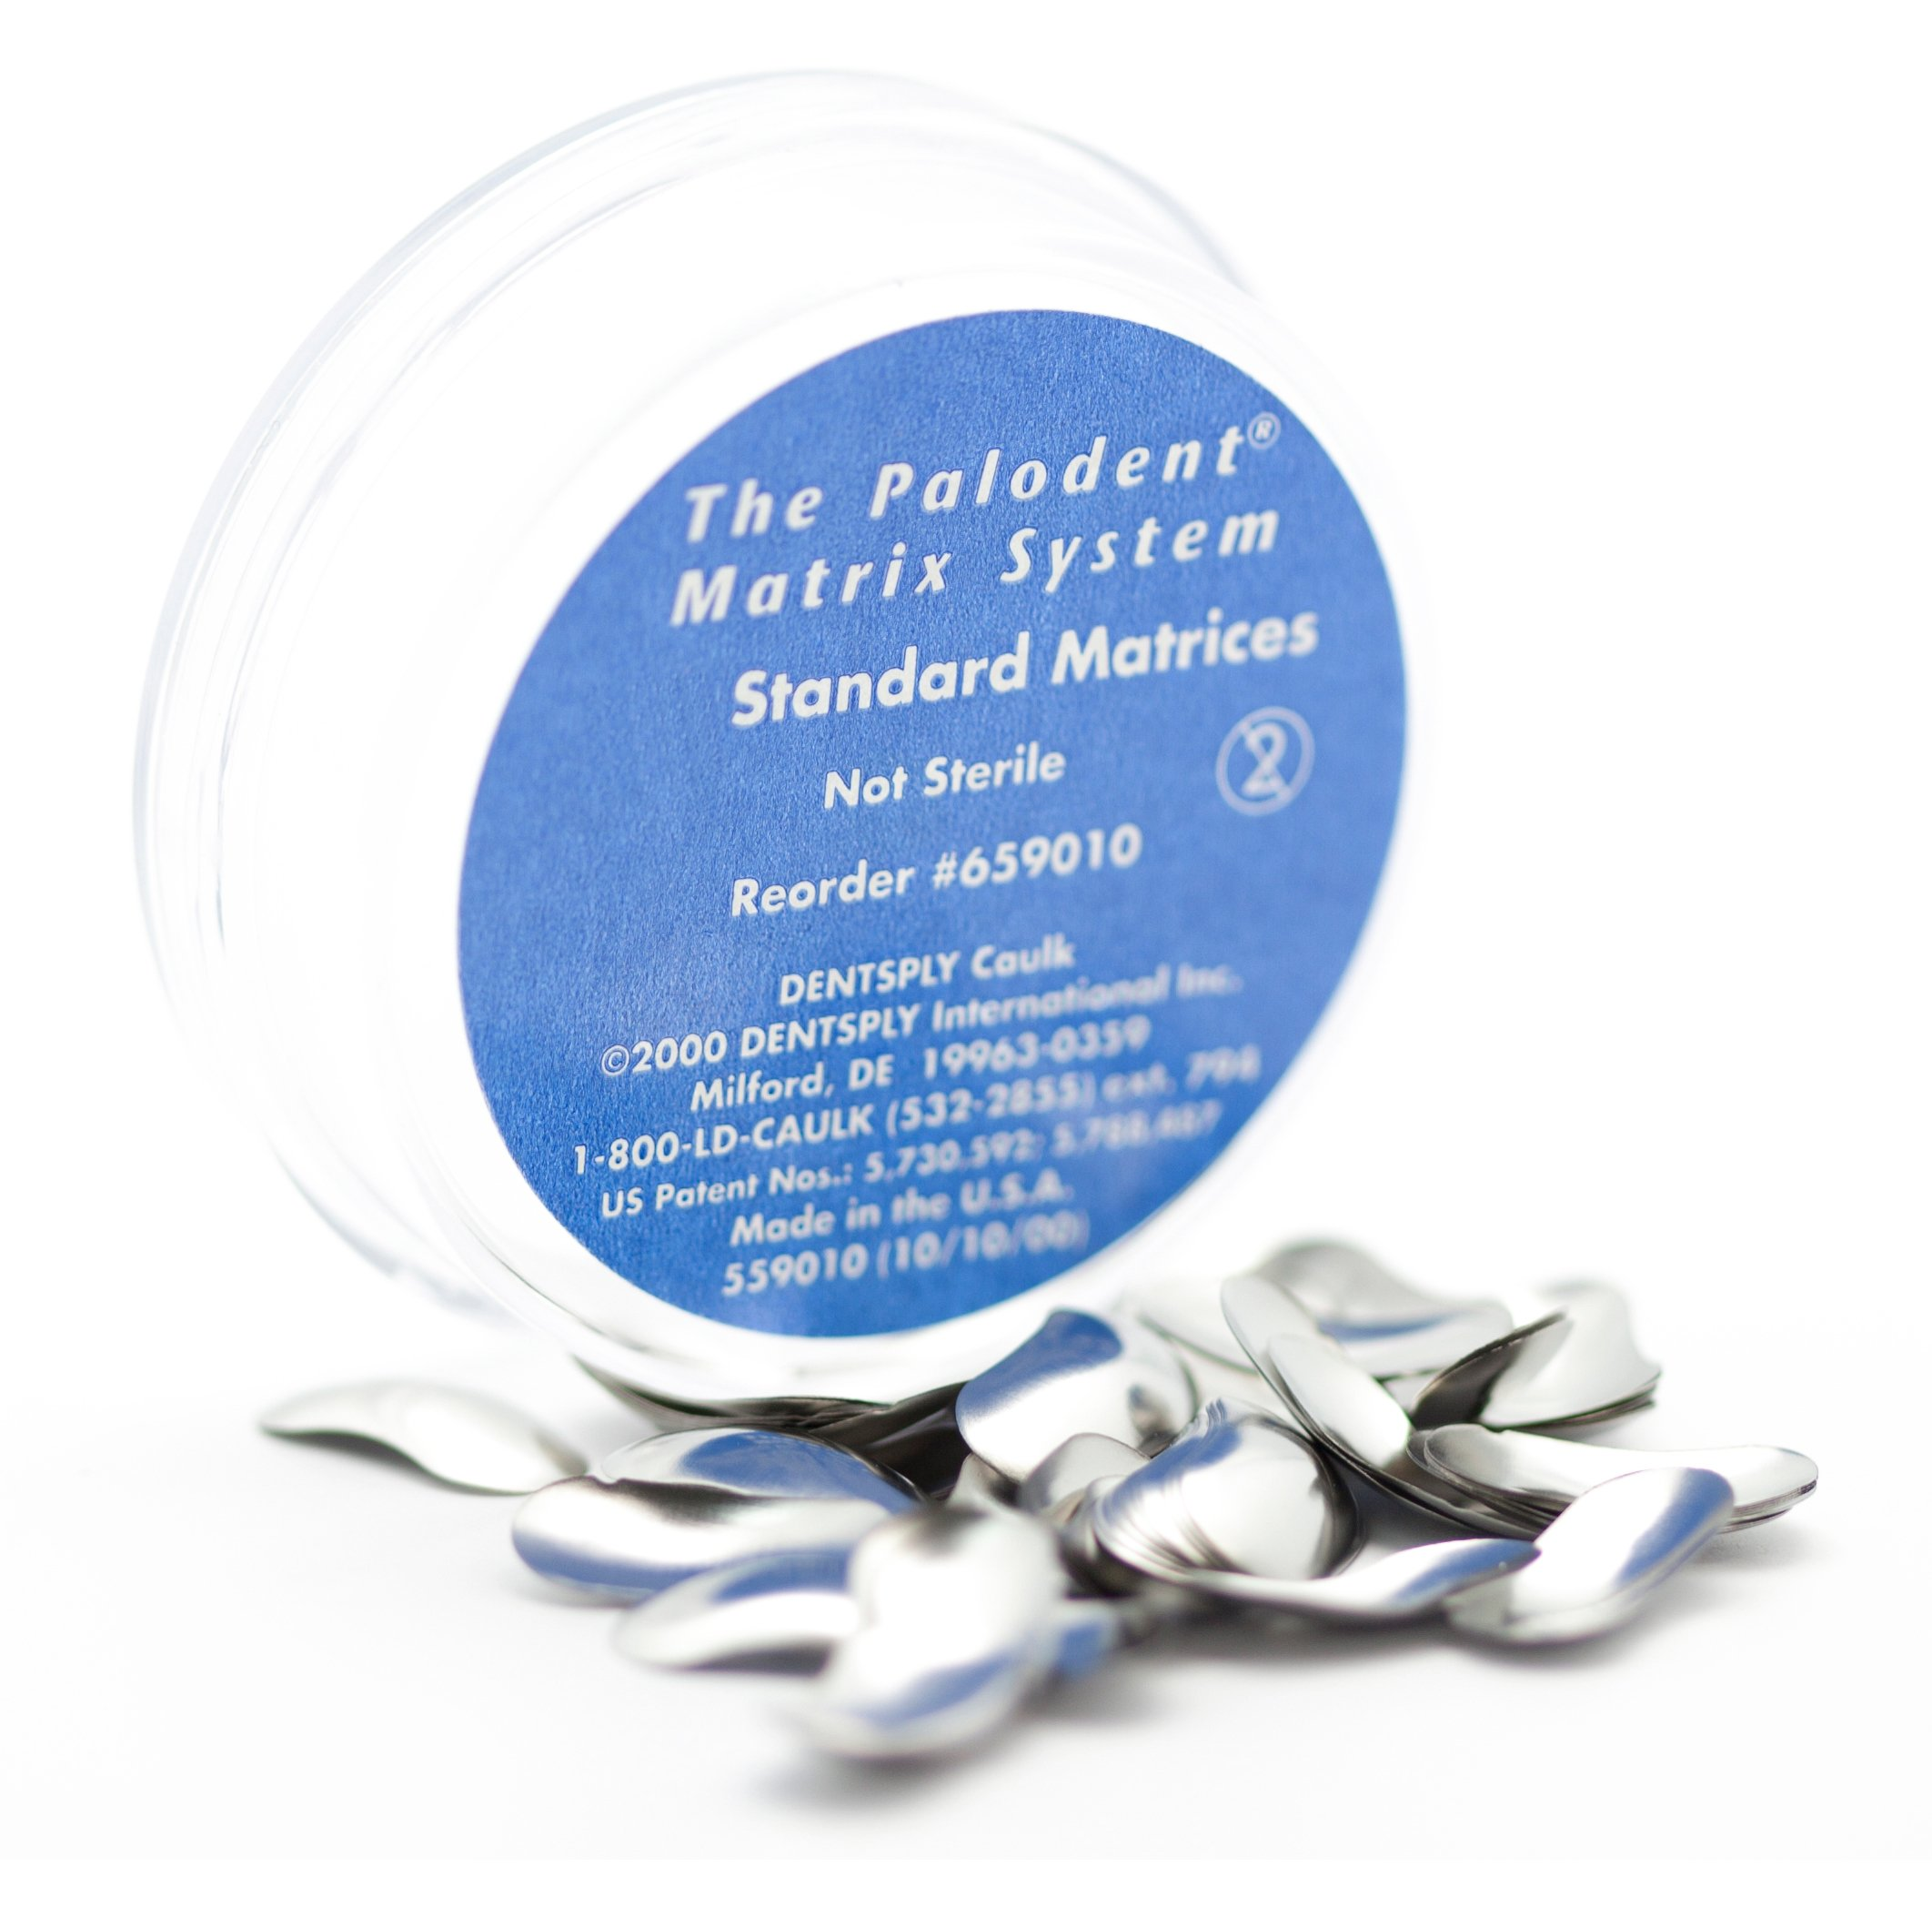 Dentsply 659015 Palodent Sectional Matrix System, Standard Matrices Refill (Pack of 50)